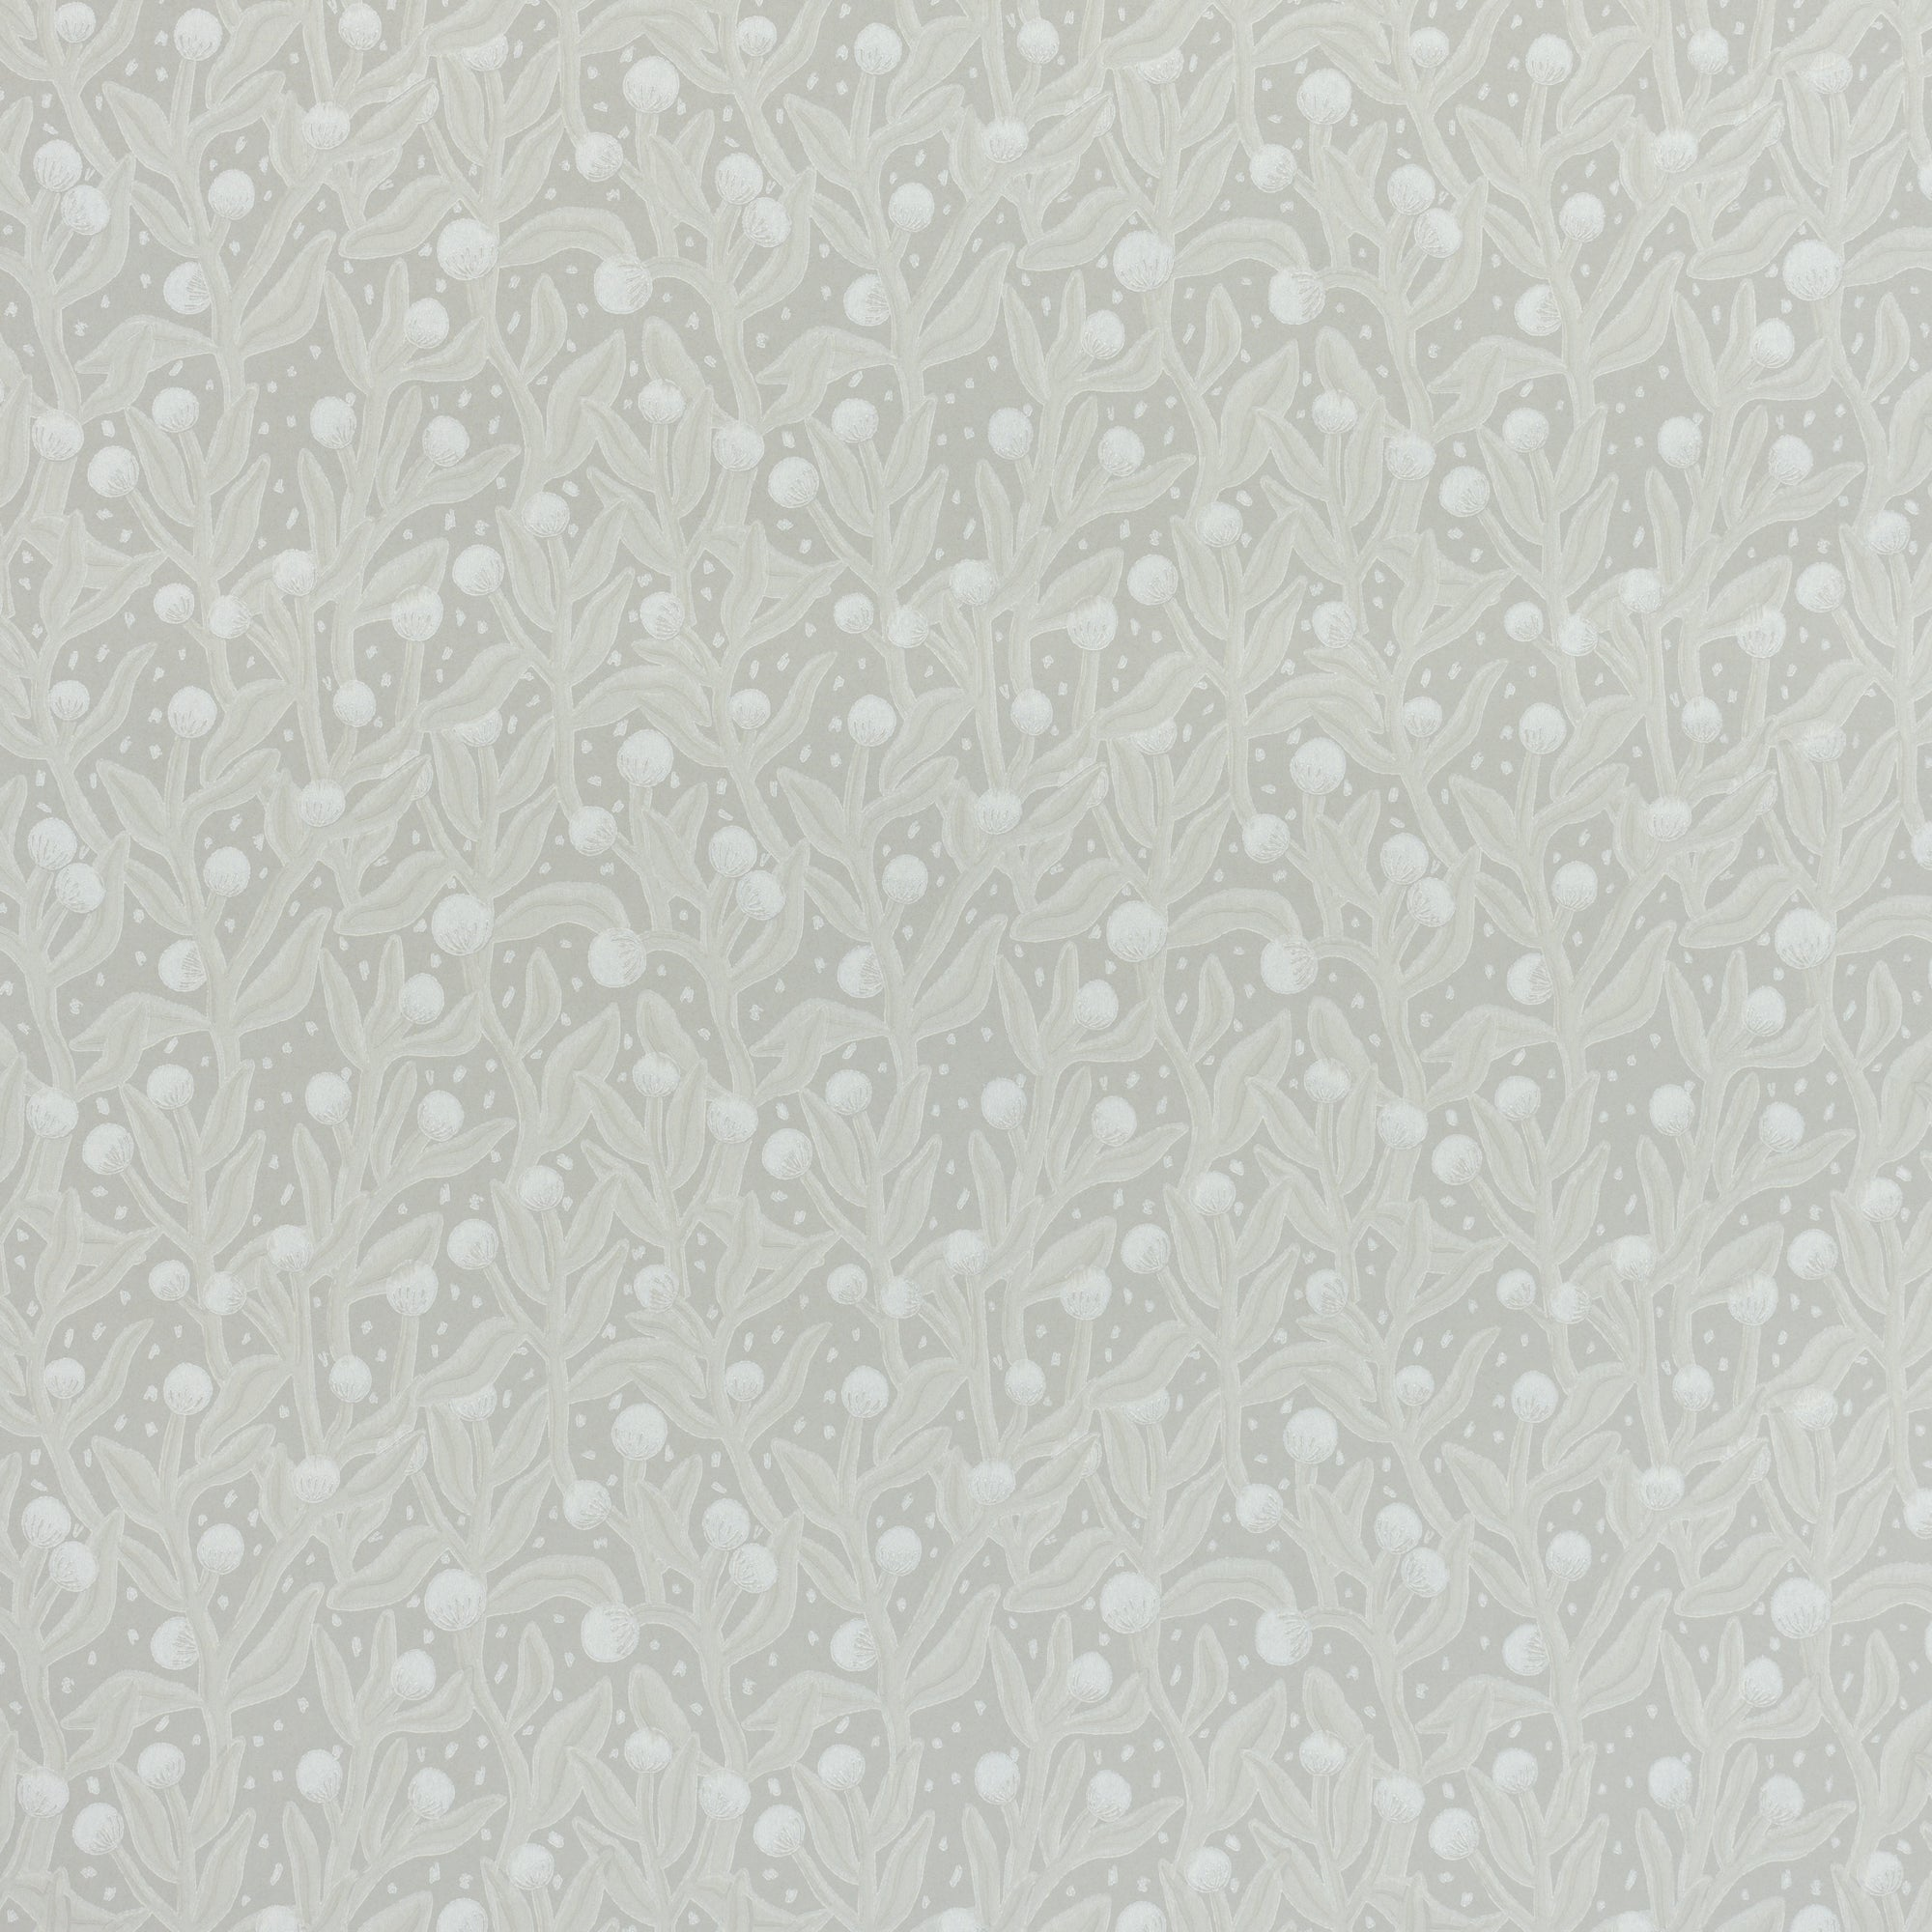 LANKA WALLPAPER - TAUPE